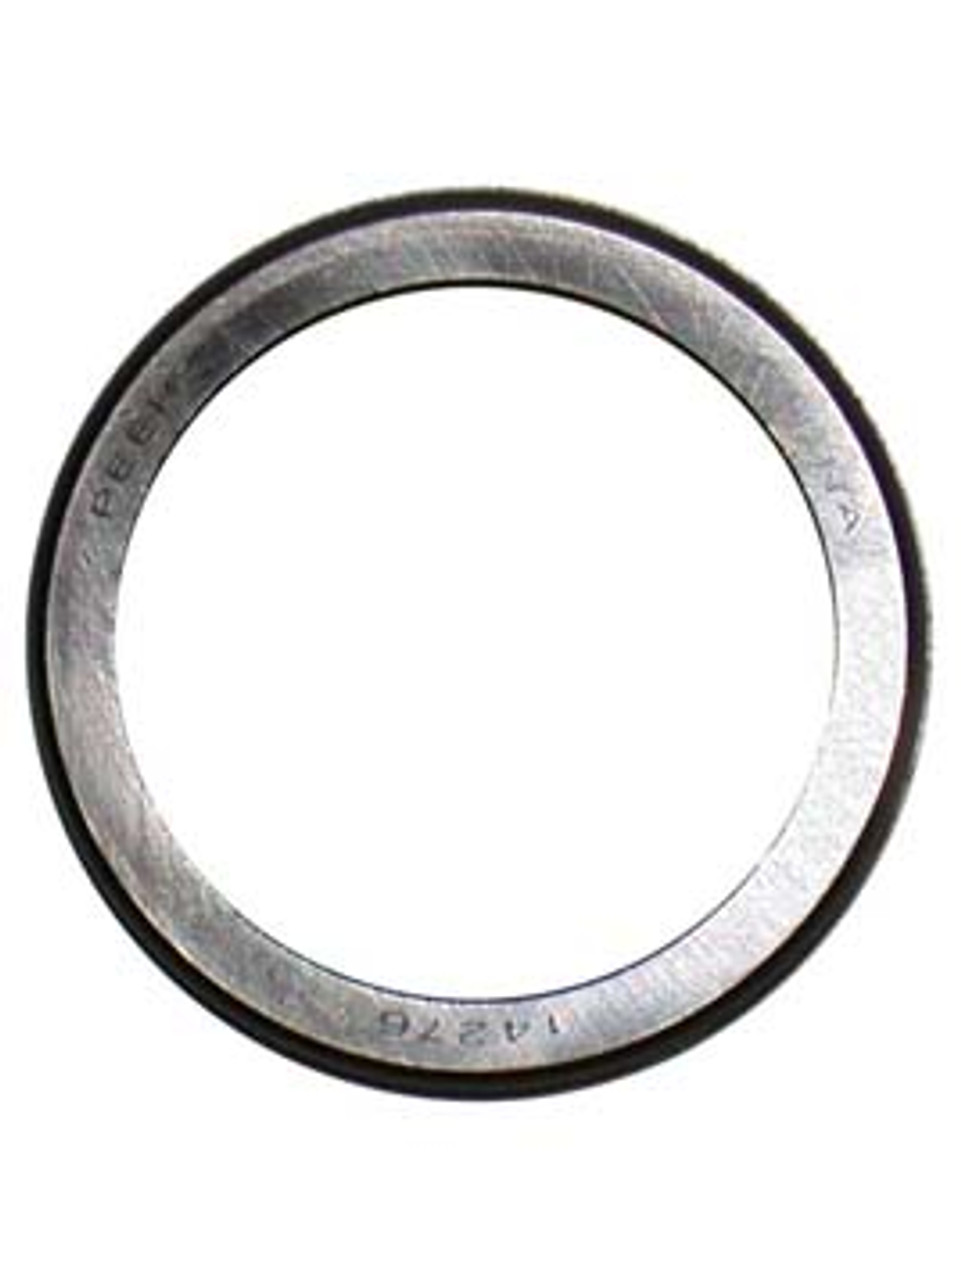 31-21-1 --- Race (Cup) for Bearing # 28682